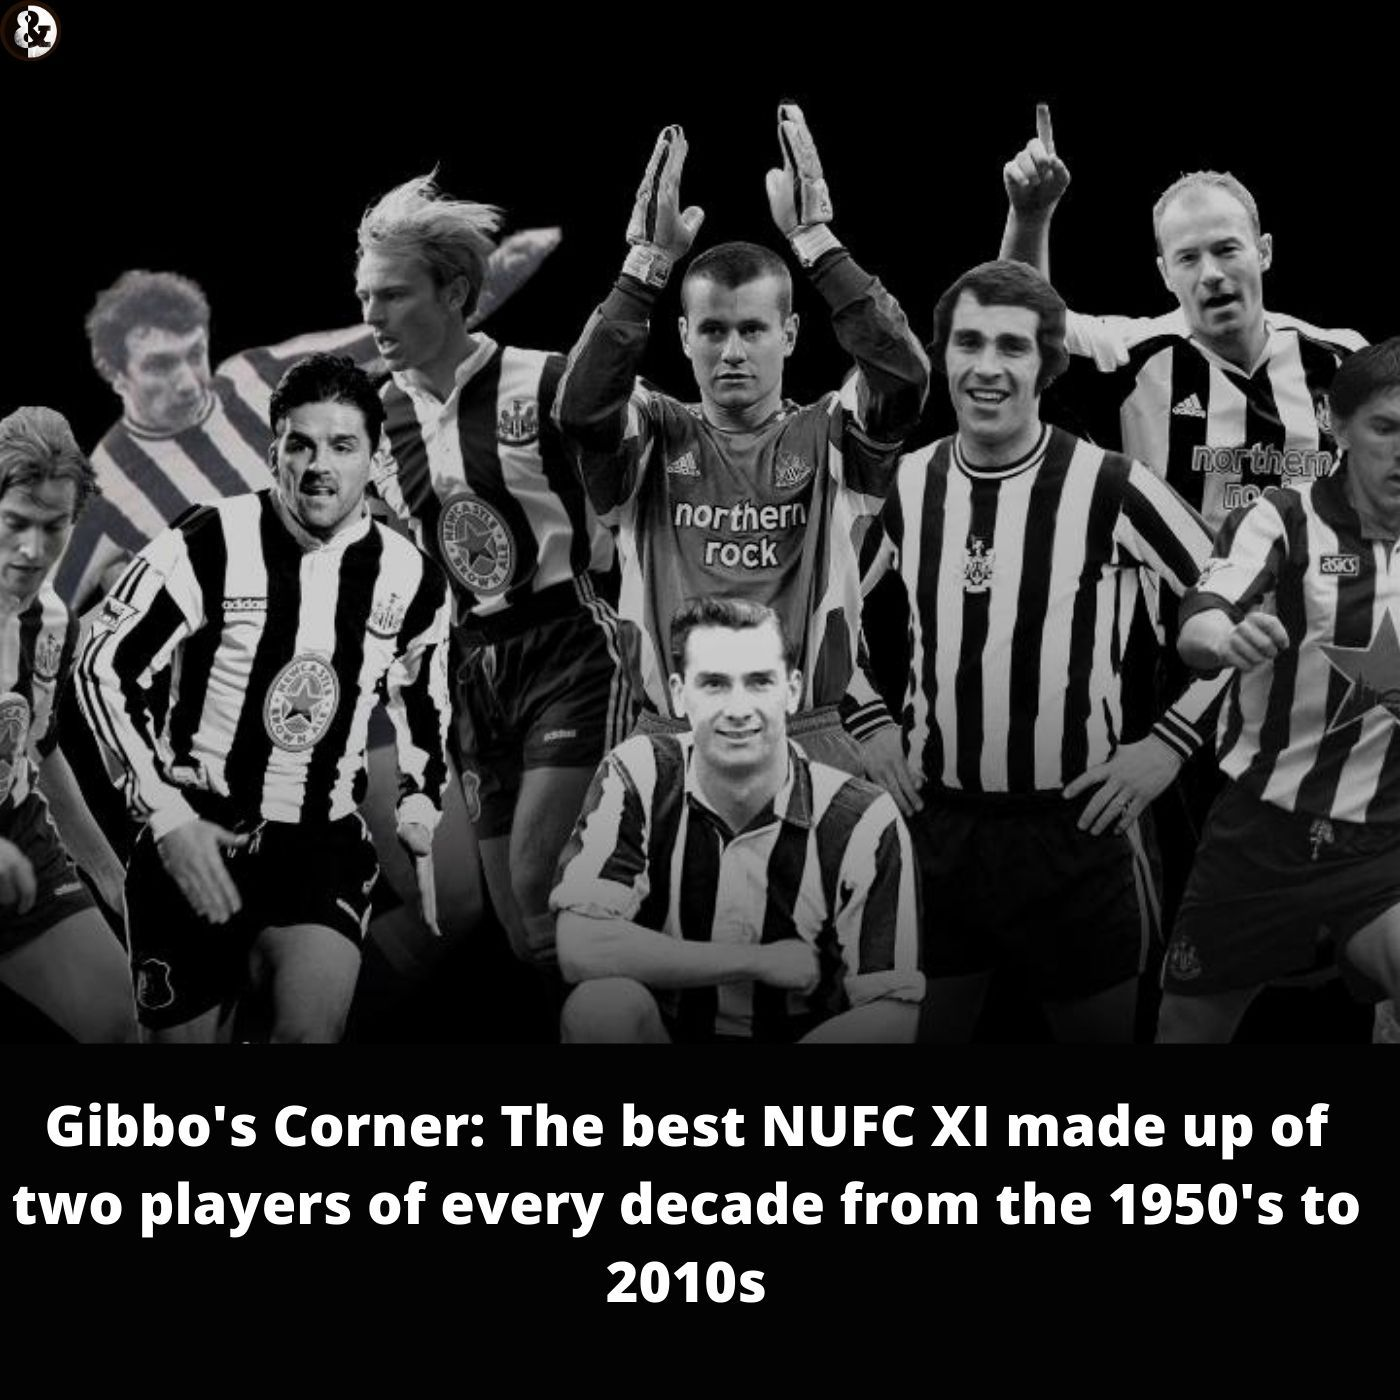 Gibbo's Corner: The best NUFC XI made up of two players of every decade from the 1950's to 2010s